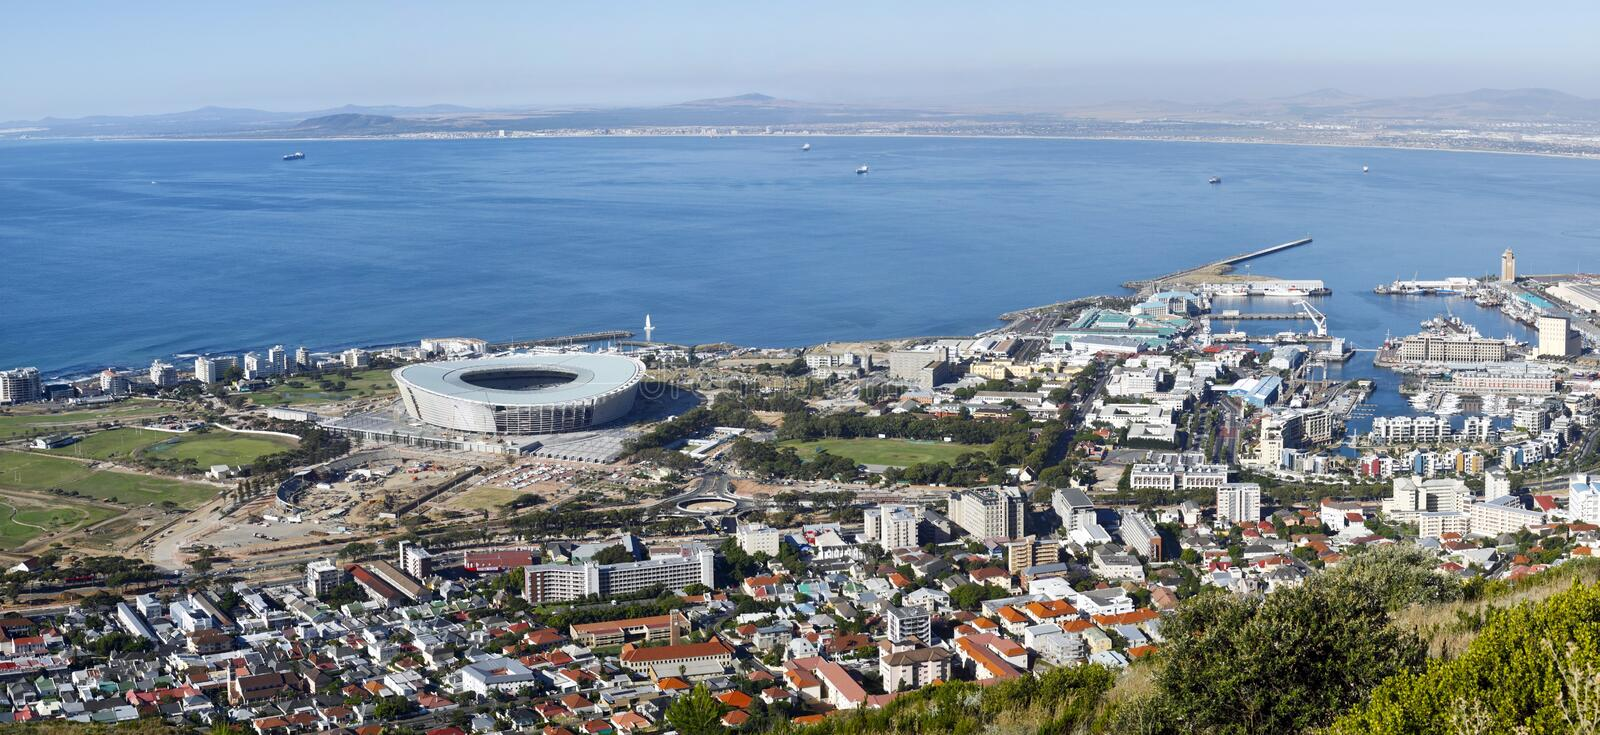 Cape Town soccer stadium in Green Point